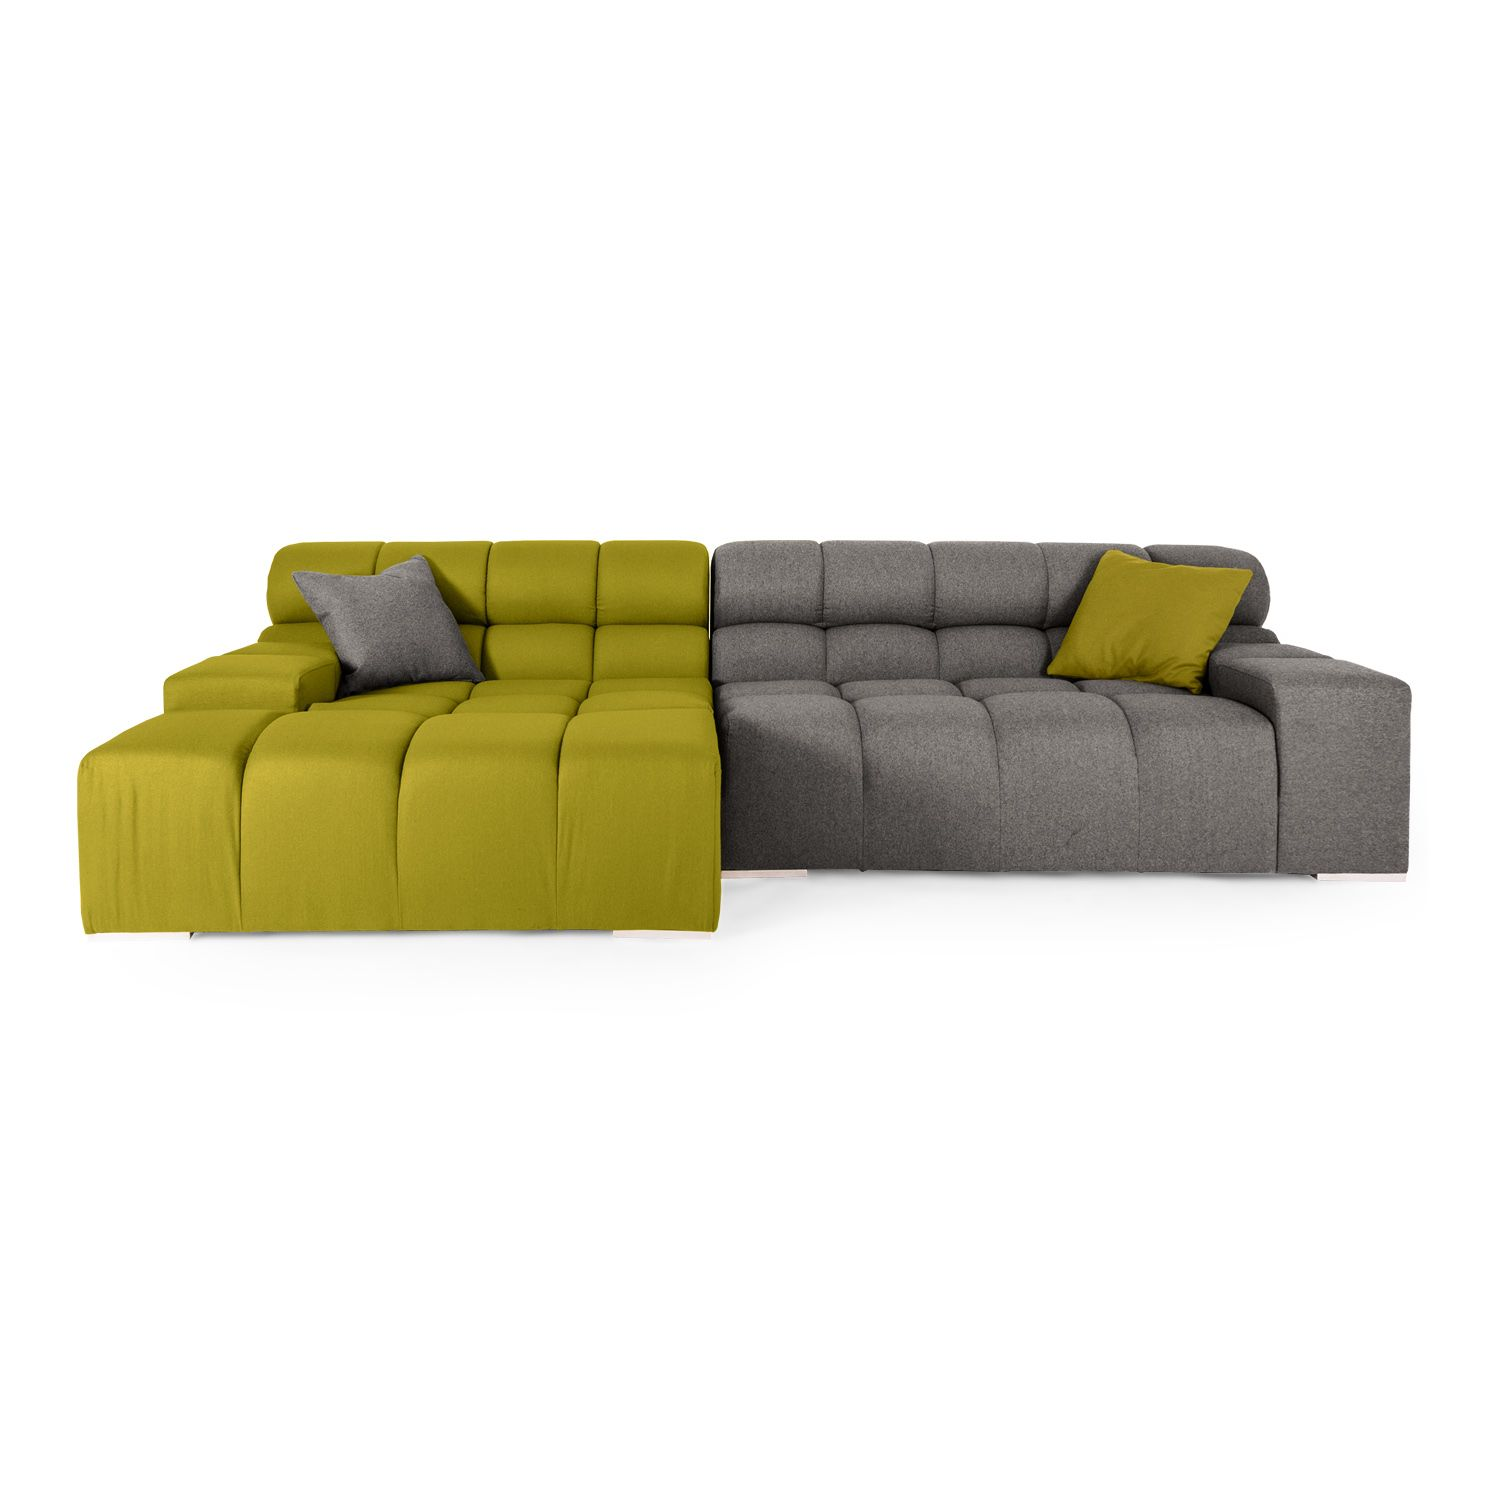 Cubix Modern Modular Sofa Sectional Left Deco Moss Cadet Grey